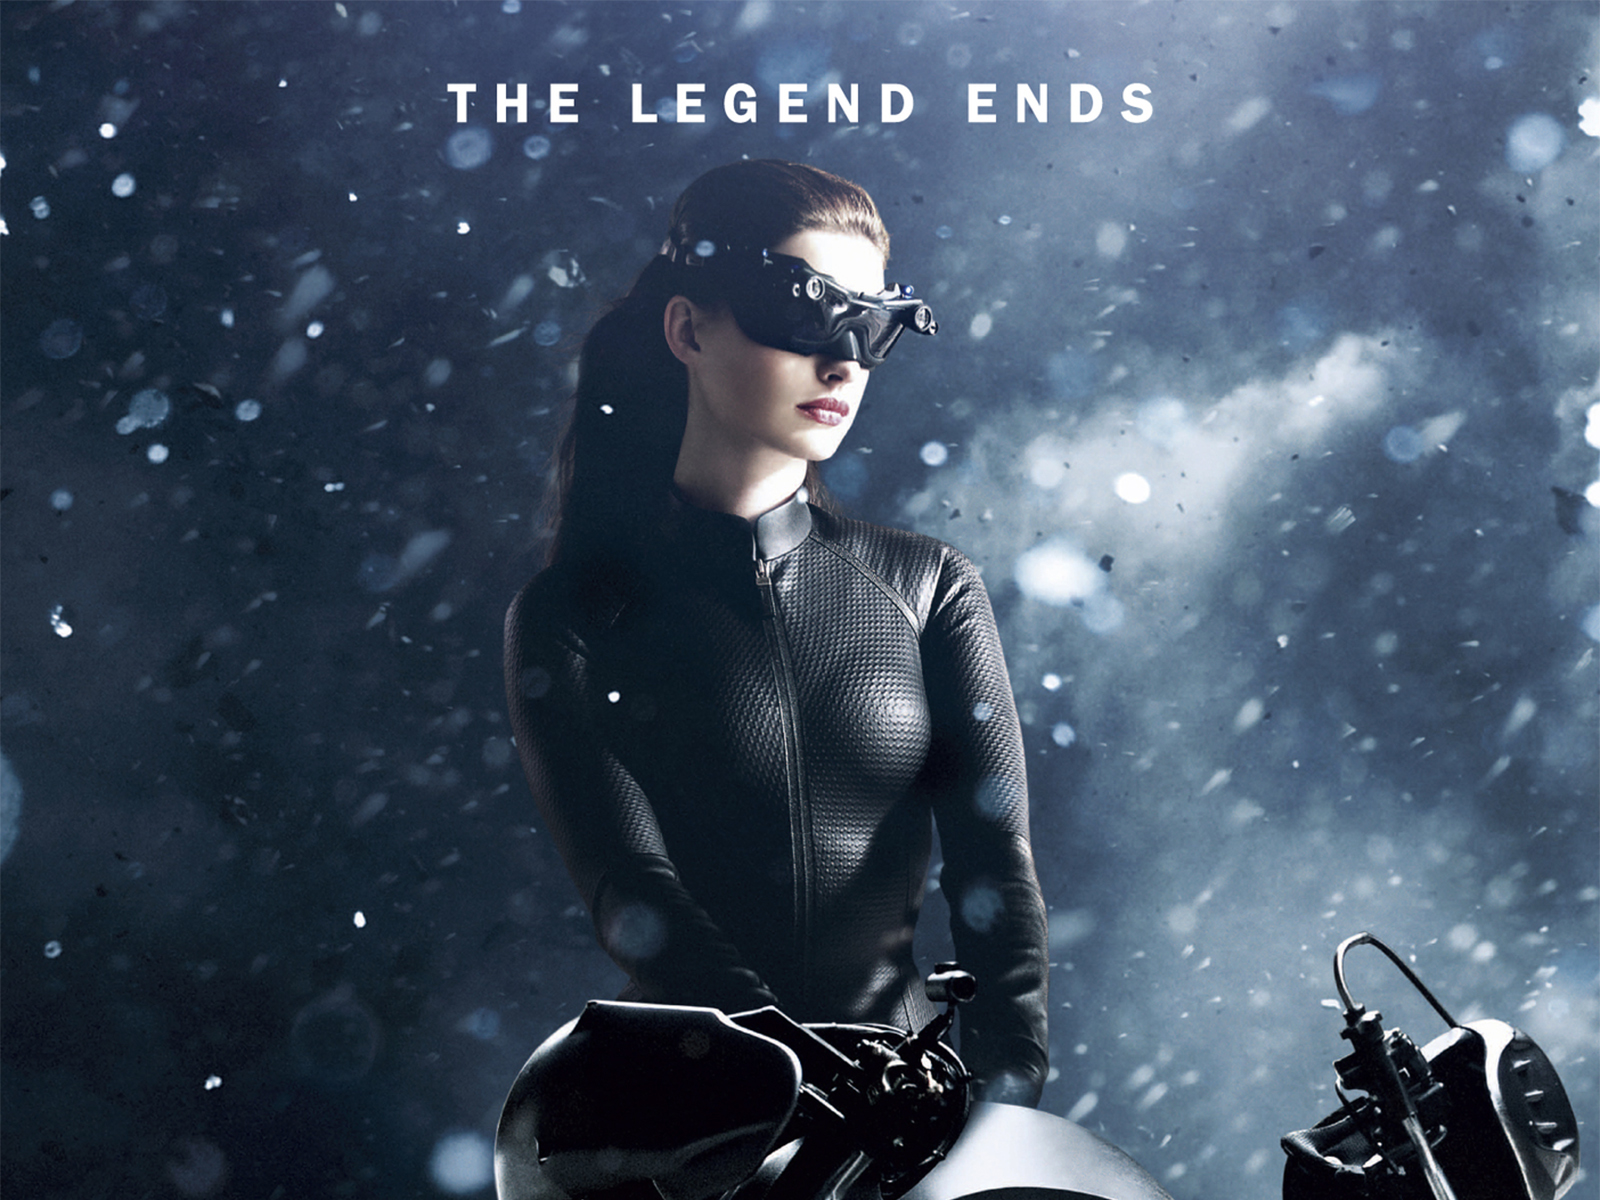 http://2.bp.blogspot.com/-ekDDpciA4Kc/UAy7ONnZZbI/AAAAAAAAF_8/gM3fc_jbOHo/s1600/the-dark-knight-rises--cat-woman-and-bike-wallpapers_33665_1600x1200.jpg